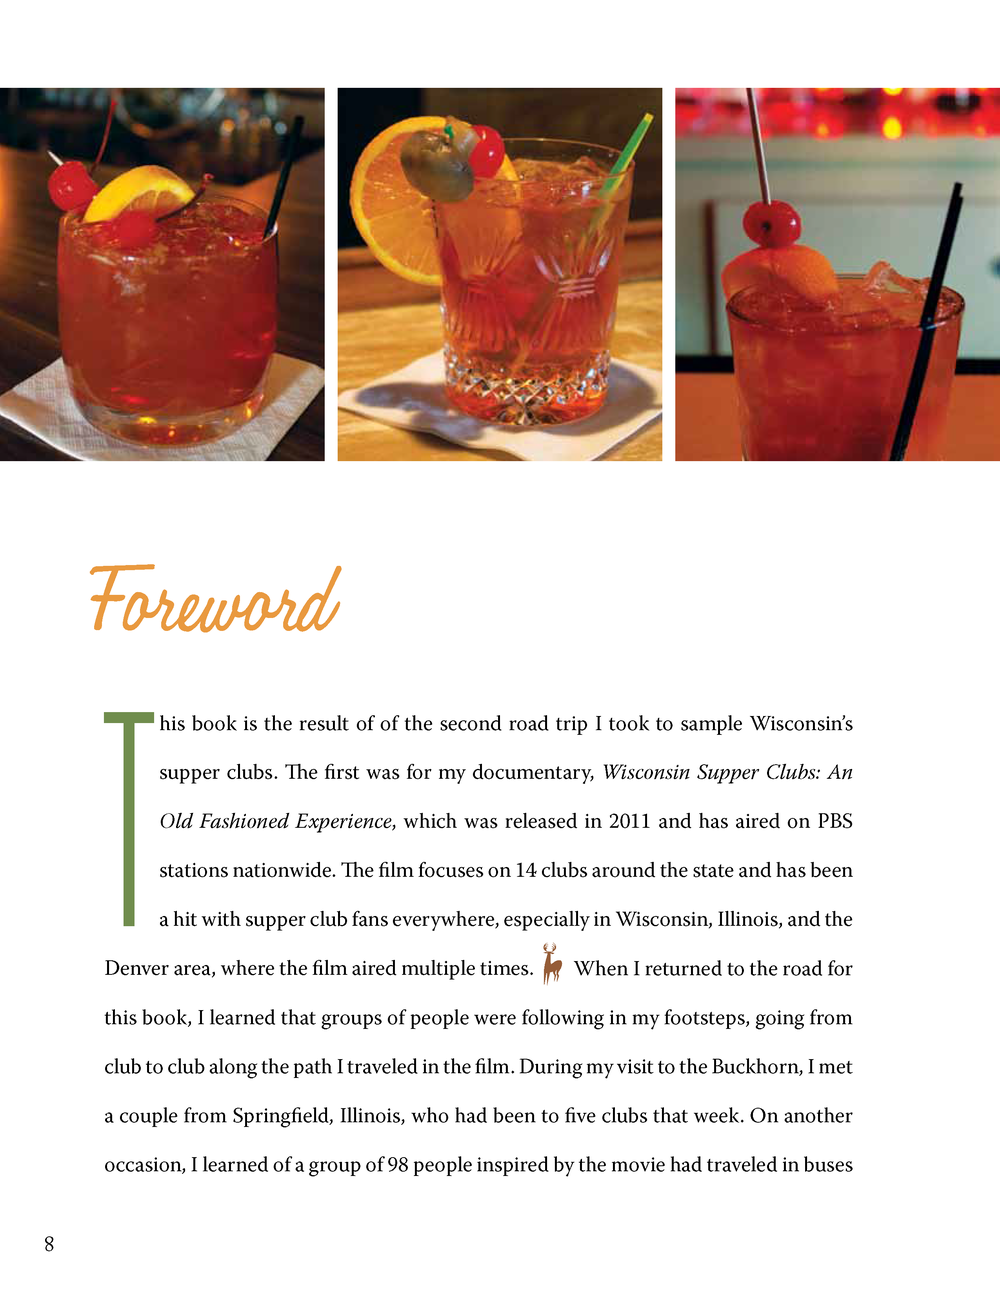 Wisconsin Supper Clubs_Page_03.png